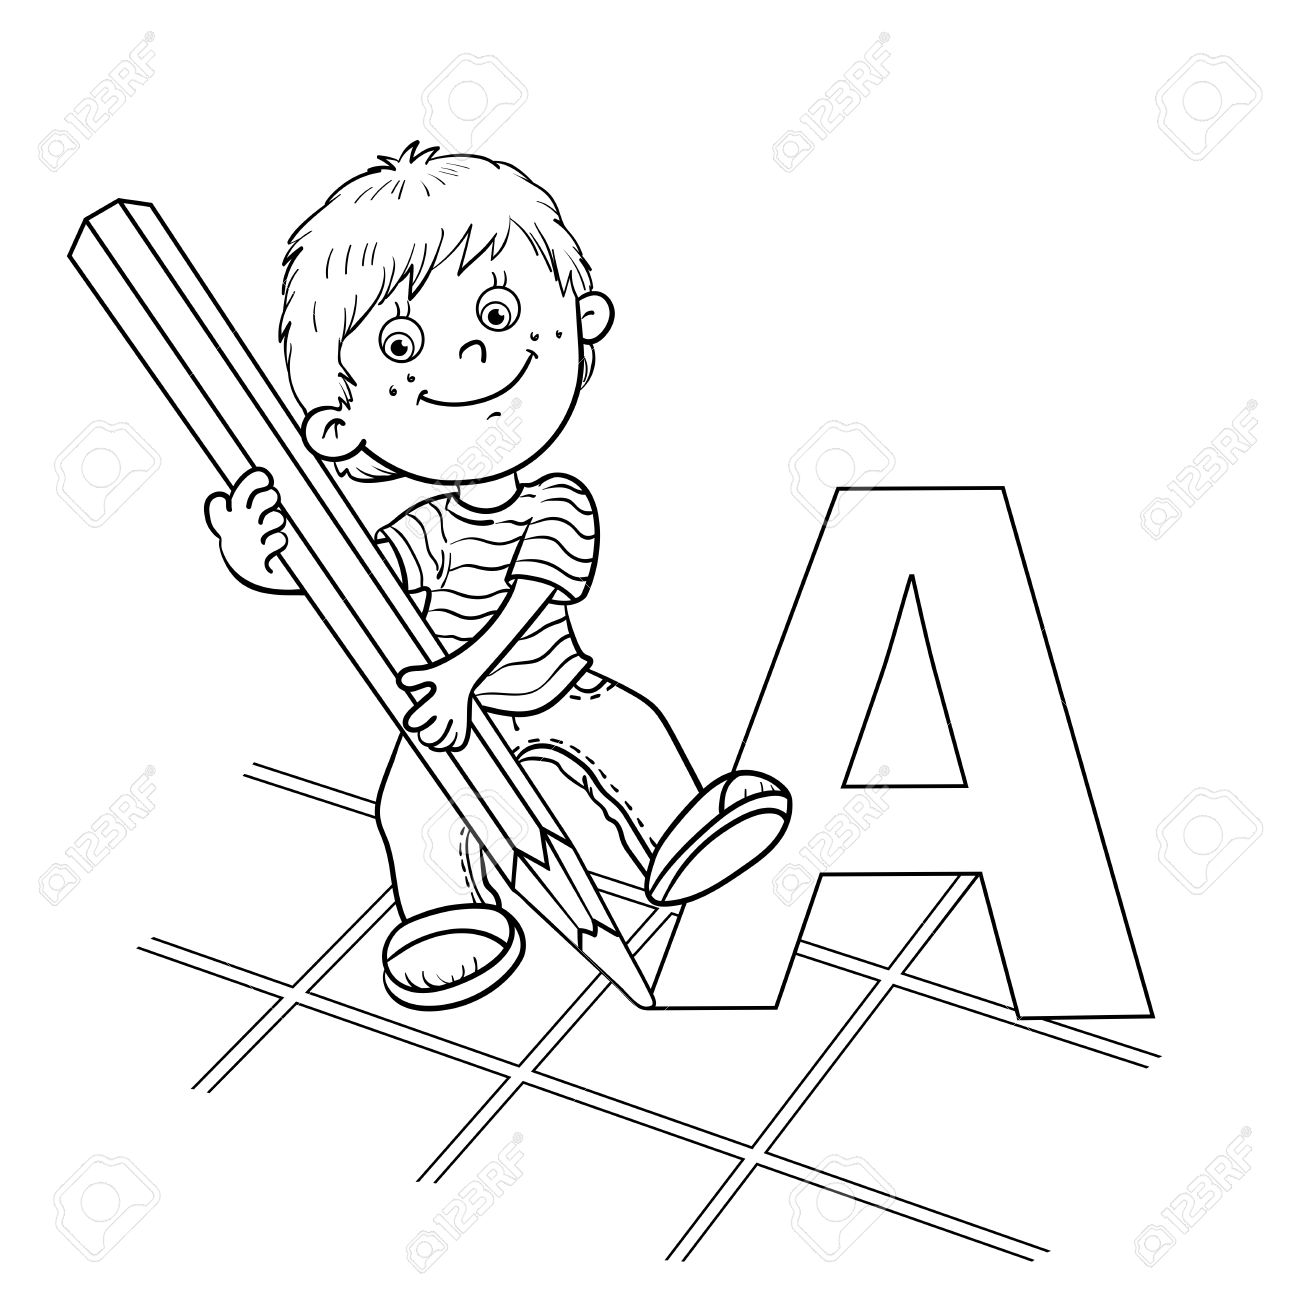 1300x1300 Coloring Page Outline Of A Cartoon Boy Drawing A Large Letter